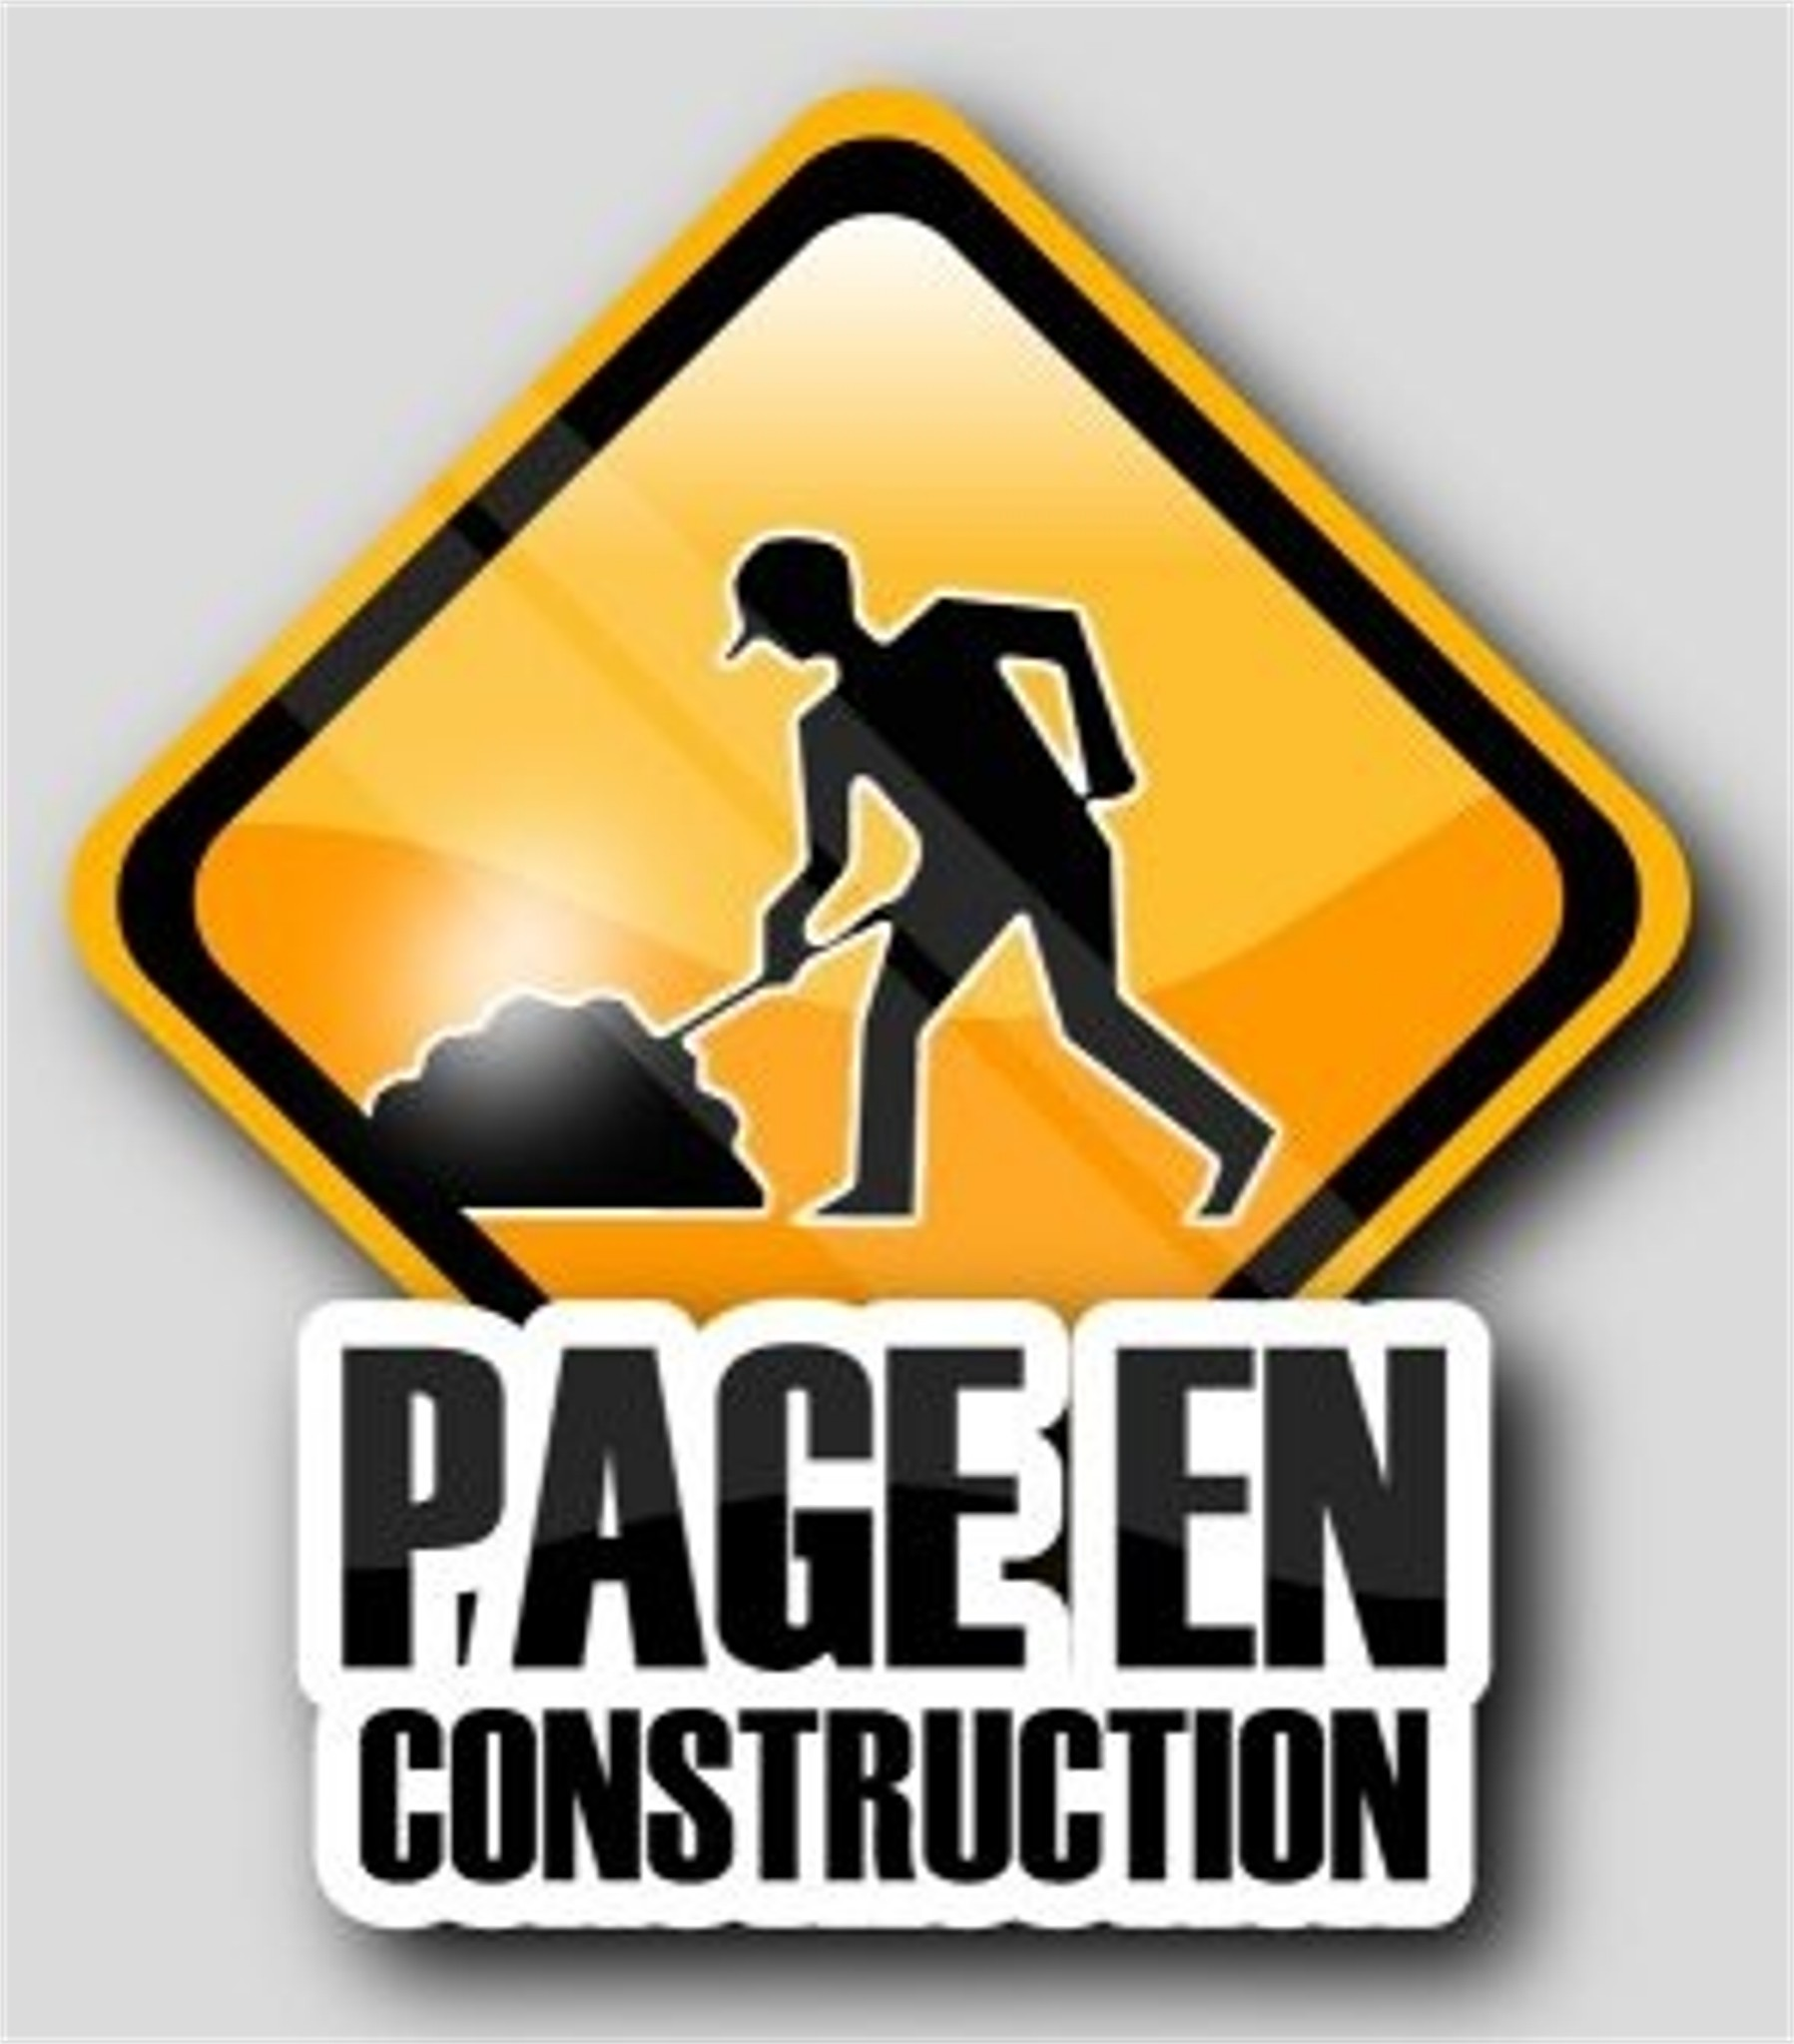 Logo page en construction